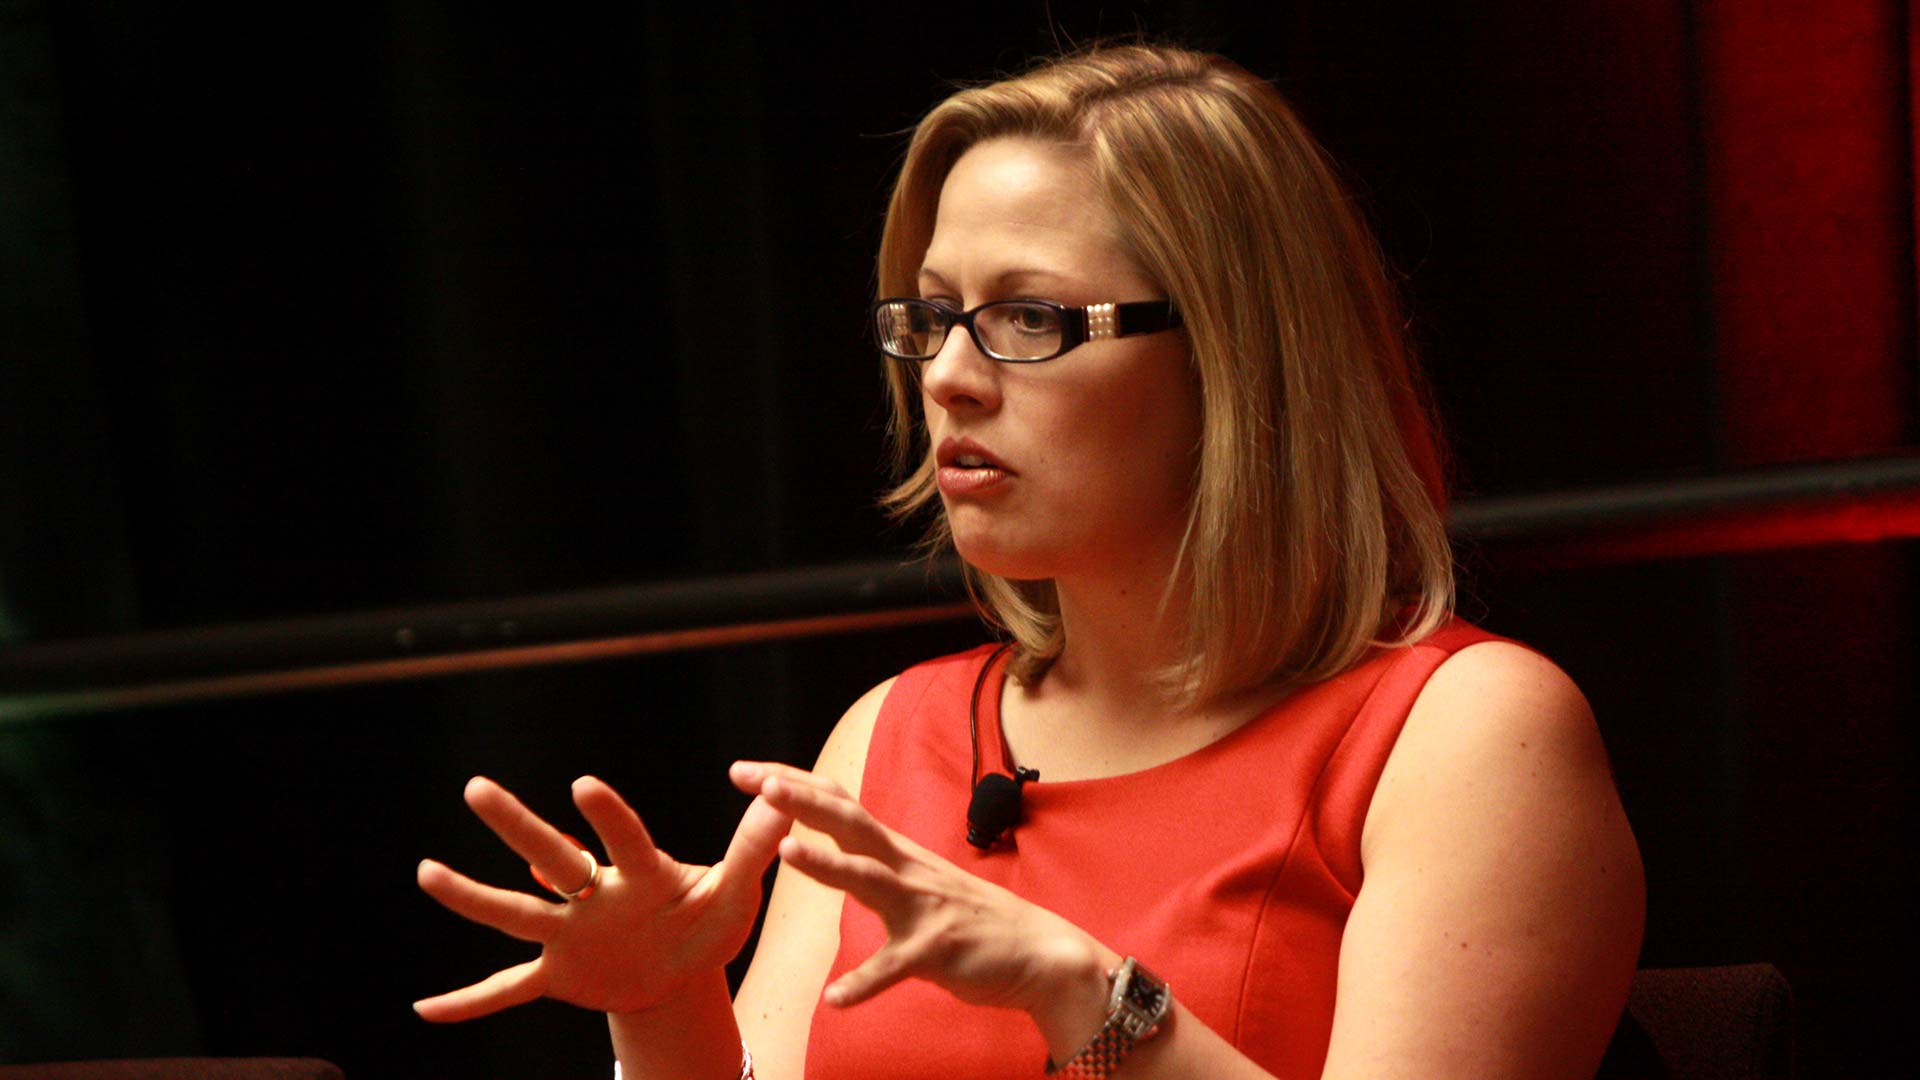 Congresswoman Kyrsten Sinema speaking at a Congressional panel at the Arizona Chamber of Commerce's Manufacturer of the Year summit in Phoenix, Arizona.